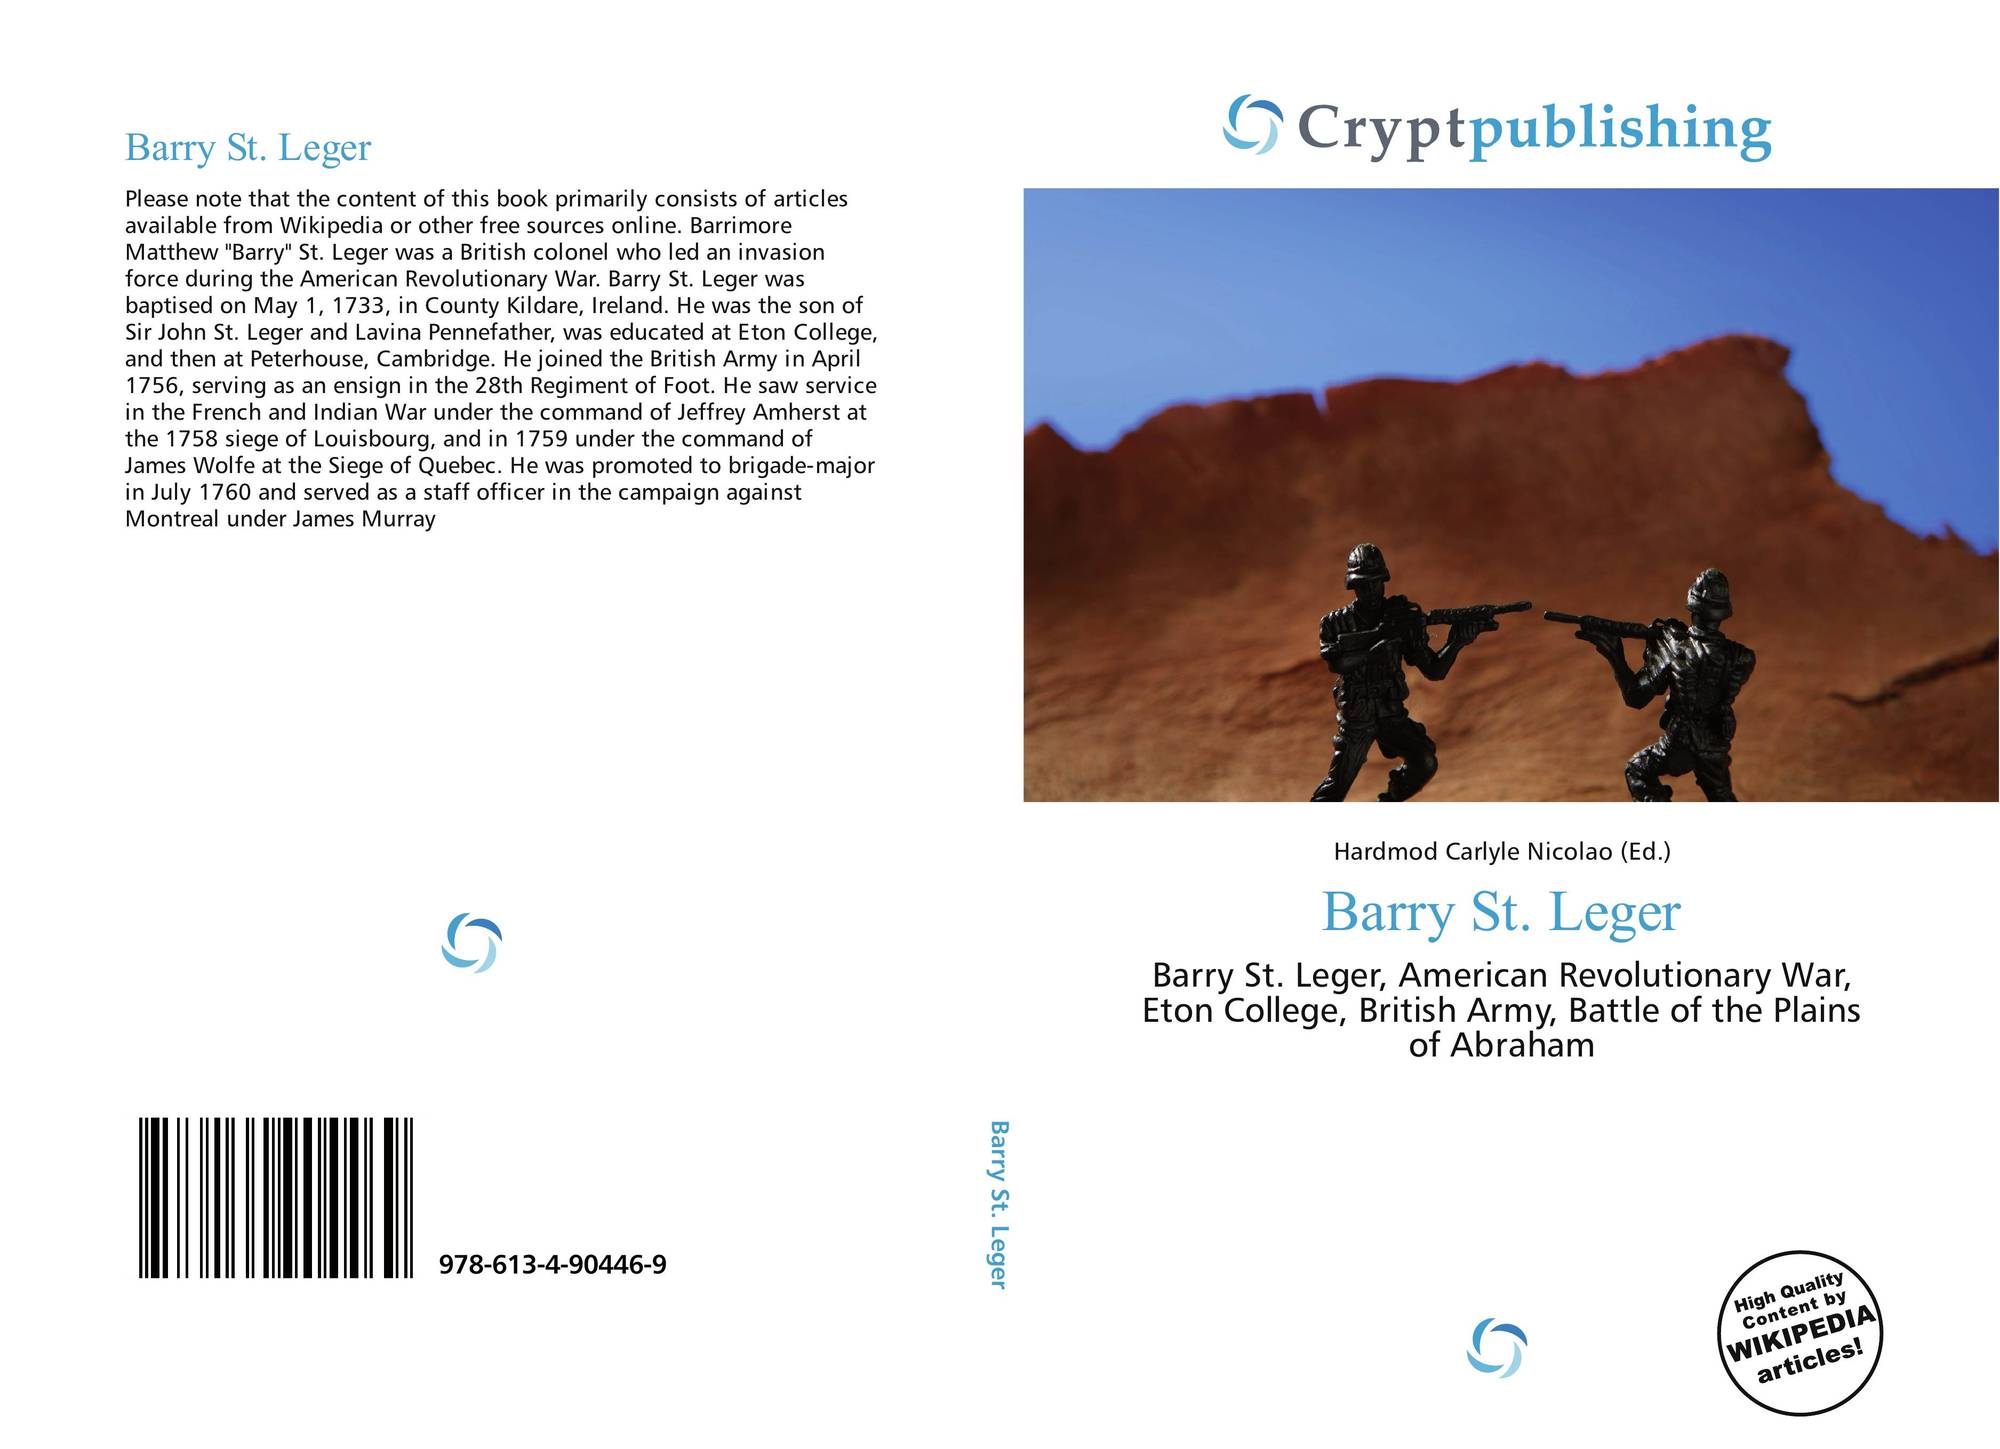 a biography of barry st leger a british general Siege of fort stanwix led by british brigadier general barry st leger st leger's expedition was a diversion in support of general john burgoyne's campaign to gain control of the hudson river valley.